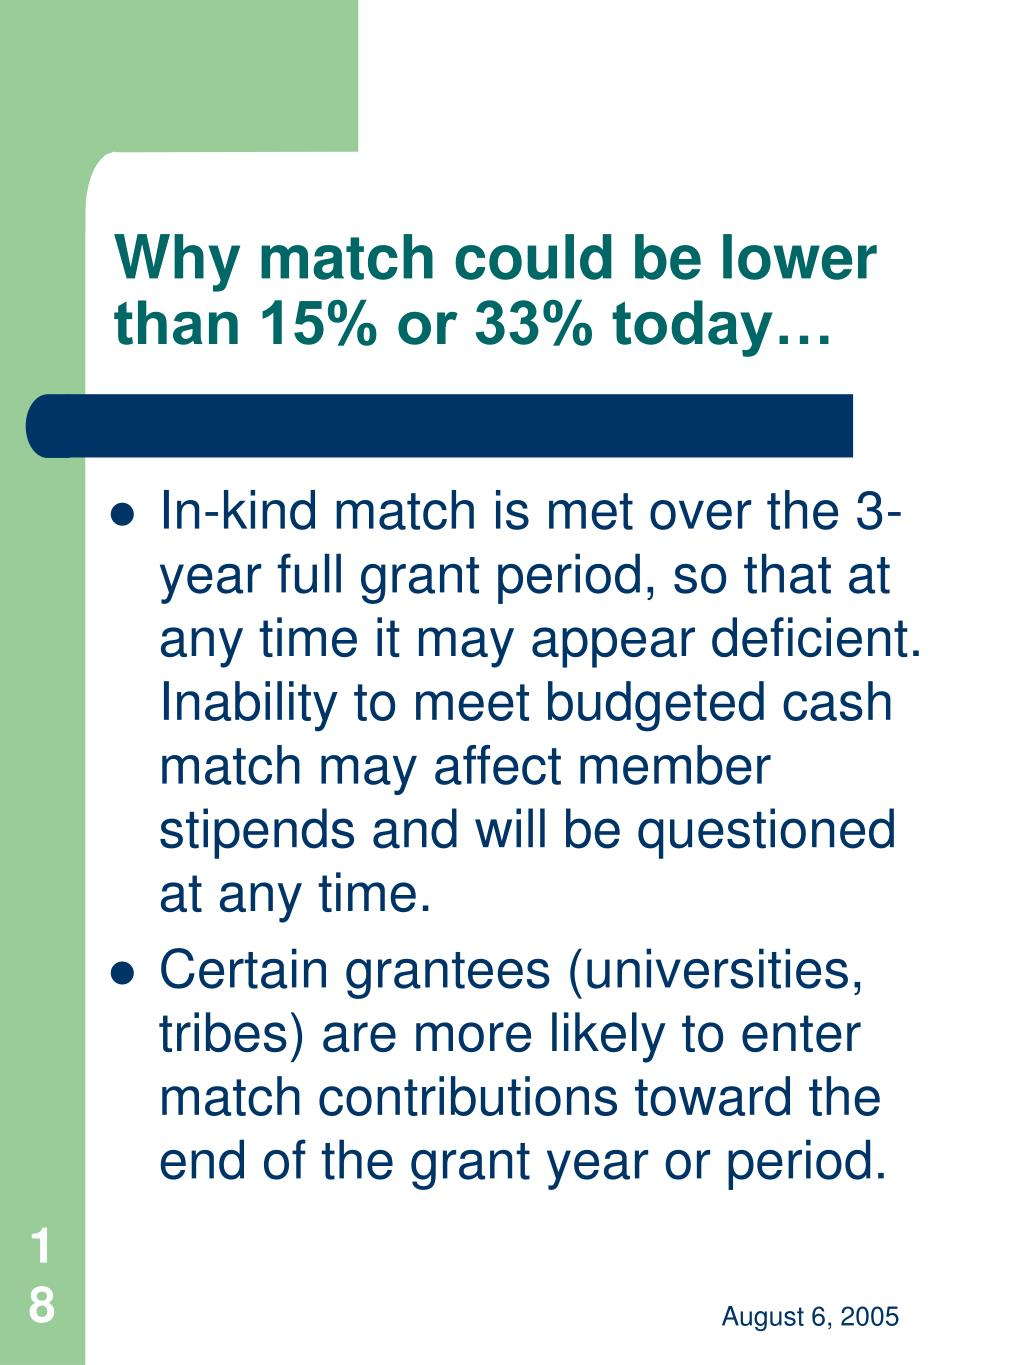 Why match could be lower than 15% or 33% today…